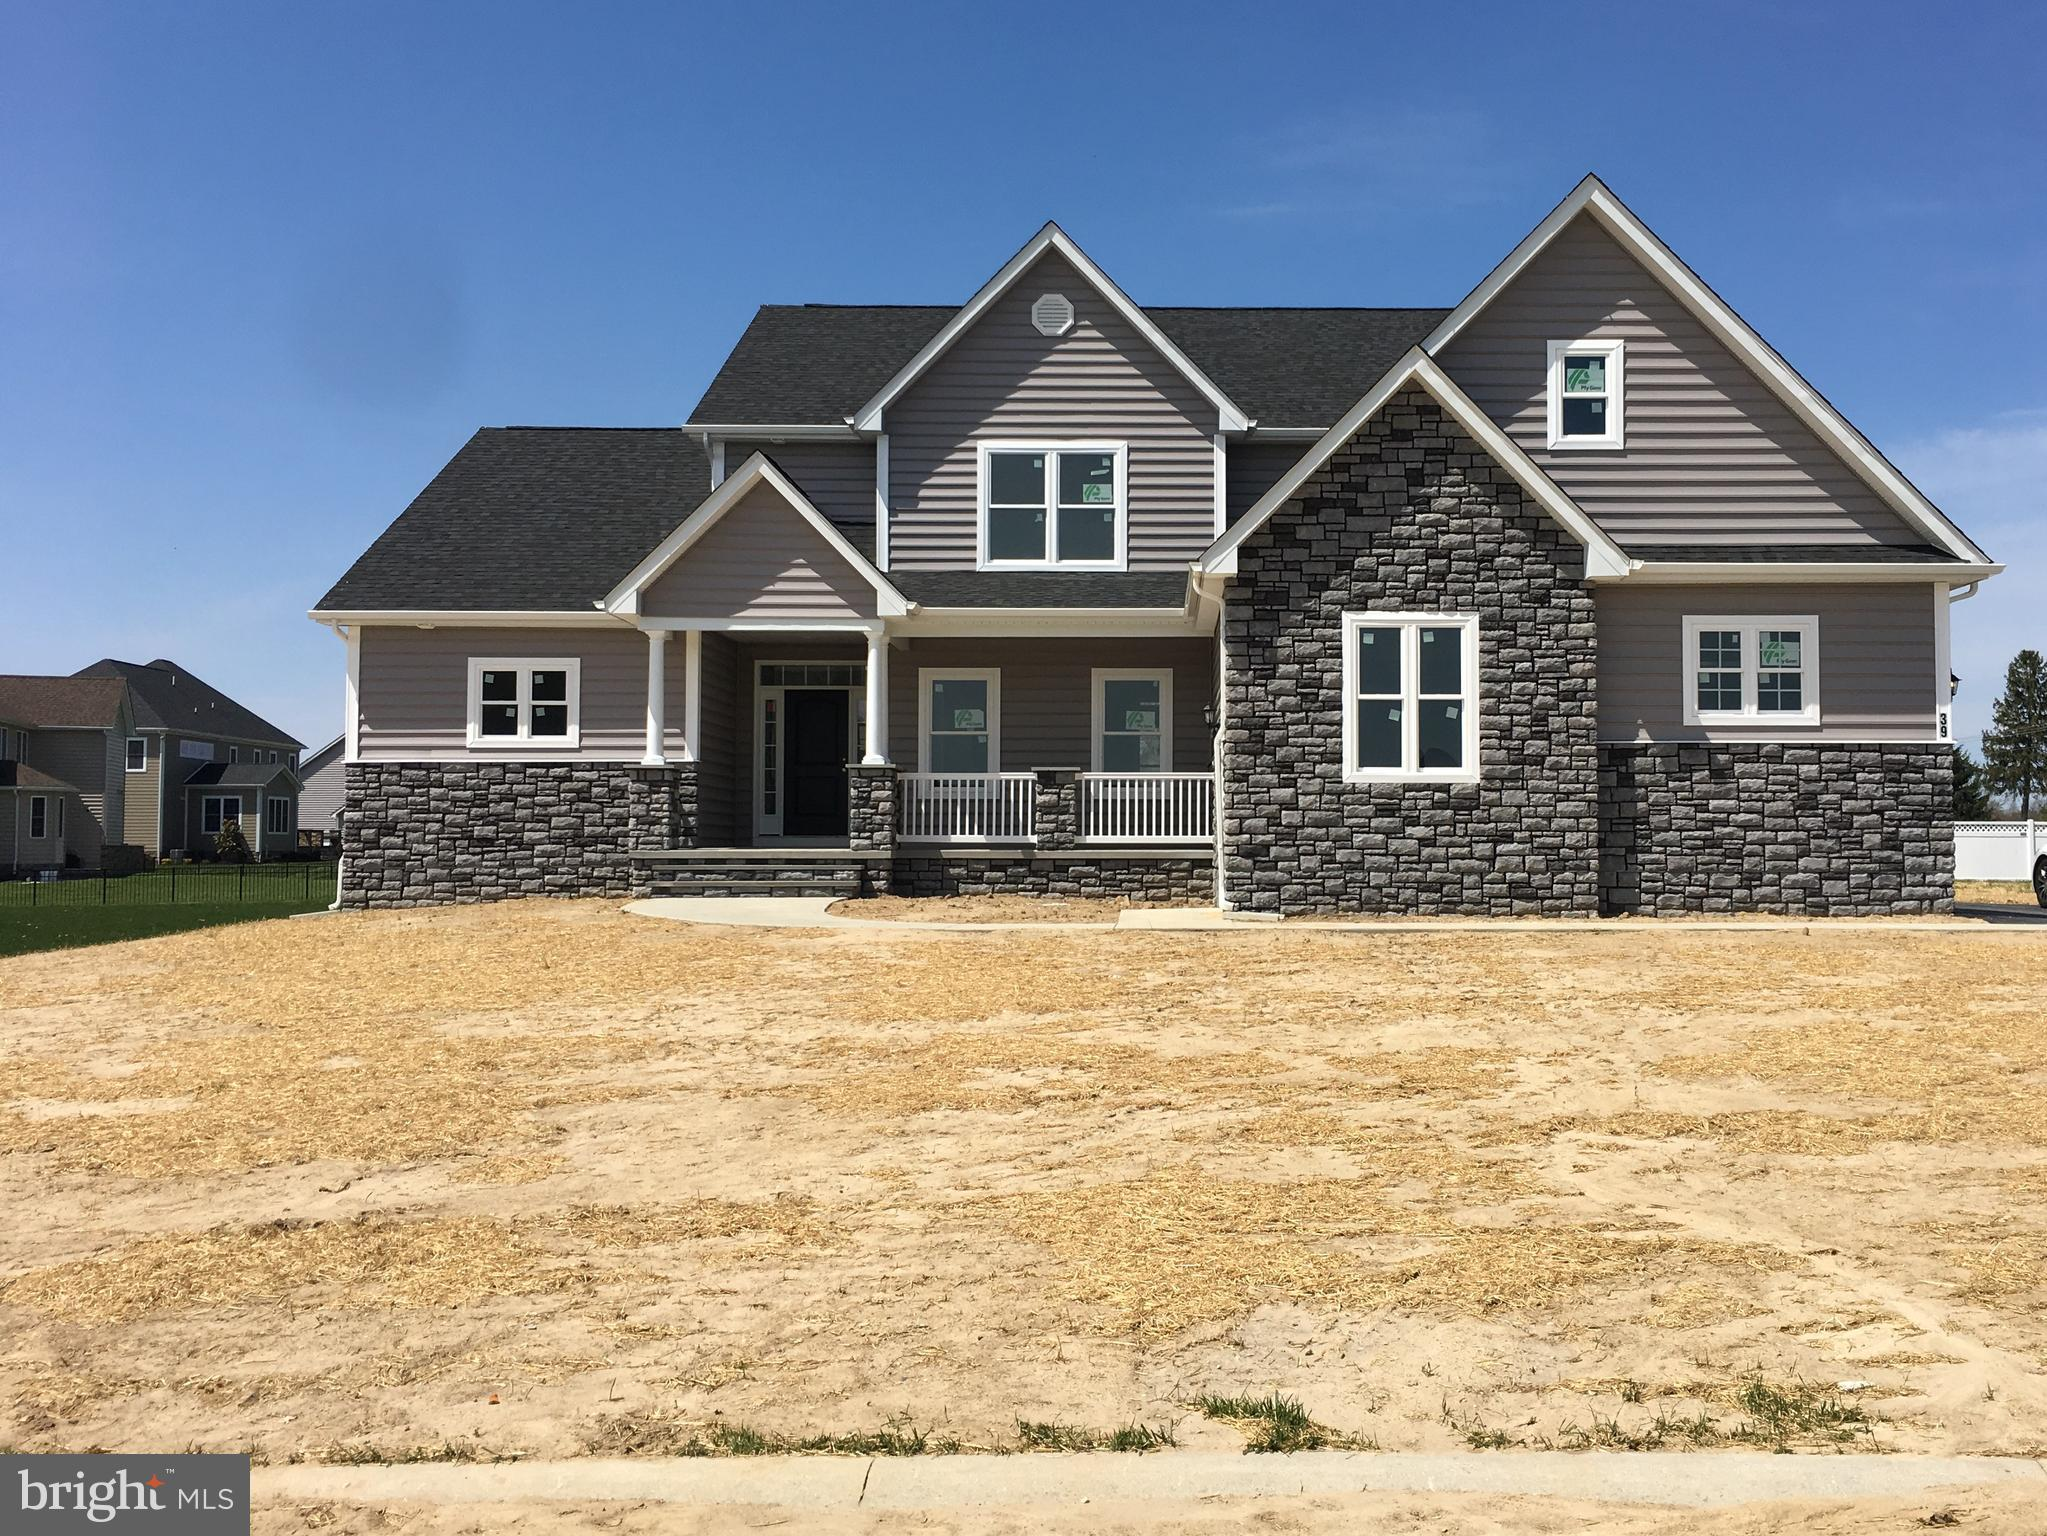 This Beautiful Waterfront New Construction has everything you can ask for with many opportunities. Ask about the extras. This home has a vesting foyer, den/library, dinning room with hardwood floors and open floor concept including the great room with fireplace, and kitchen. Gourmet Kitchen, granite counter tops, island, stainless steal appliances,plenty of storage. It features 4 bedrooms and 4 Full baths, with 2 master bedroom suites. Master Bed one on the main floor features Custom title walk-in shower and Whirl pool tub, double sinks, walk in closet. The second master bedroom is located upstairs with its own private bathroom, You will also find the additional 2 bedrooms and full bath upstairs, along with a cozy little loft area and large finished storage room. Ask about additional options for storage room. Hardwood floors in foyer, den/library and dinning room. Tile in all bathrooms, laundry room, kitchen and breakfast area. Check out all the additional features included in the listing. Builder is open to other building plans for this lot. If you like the lot but prefer a different style home please reach out to listing agent. Price change based on new plans.